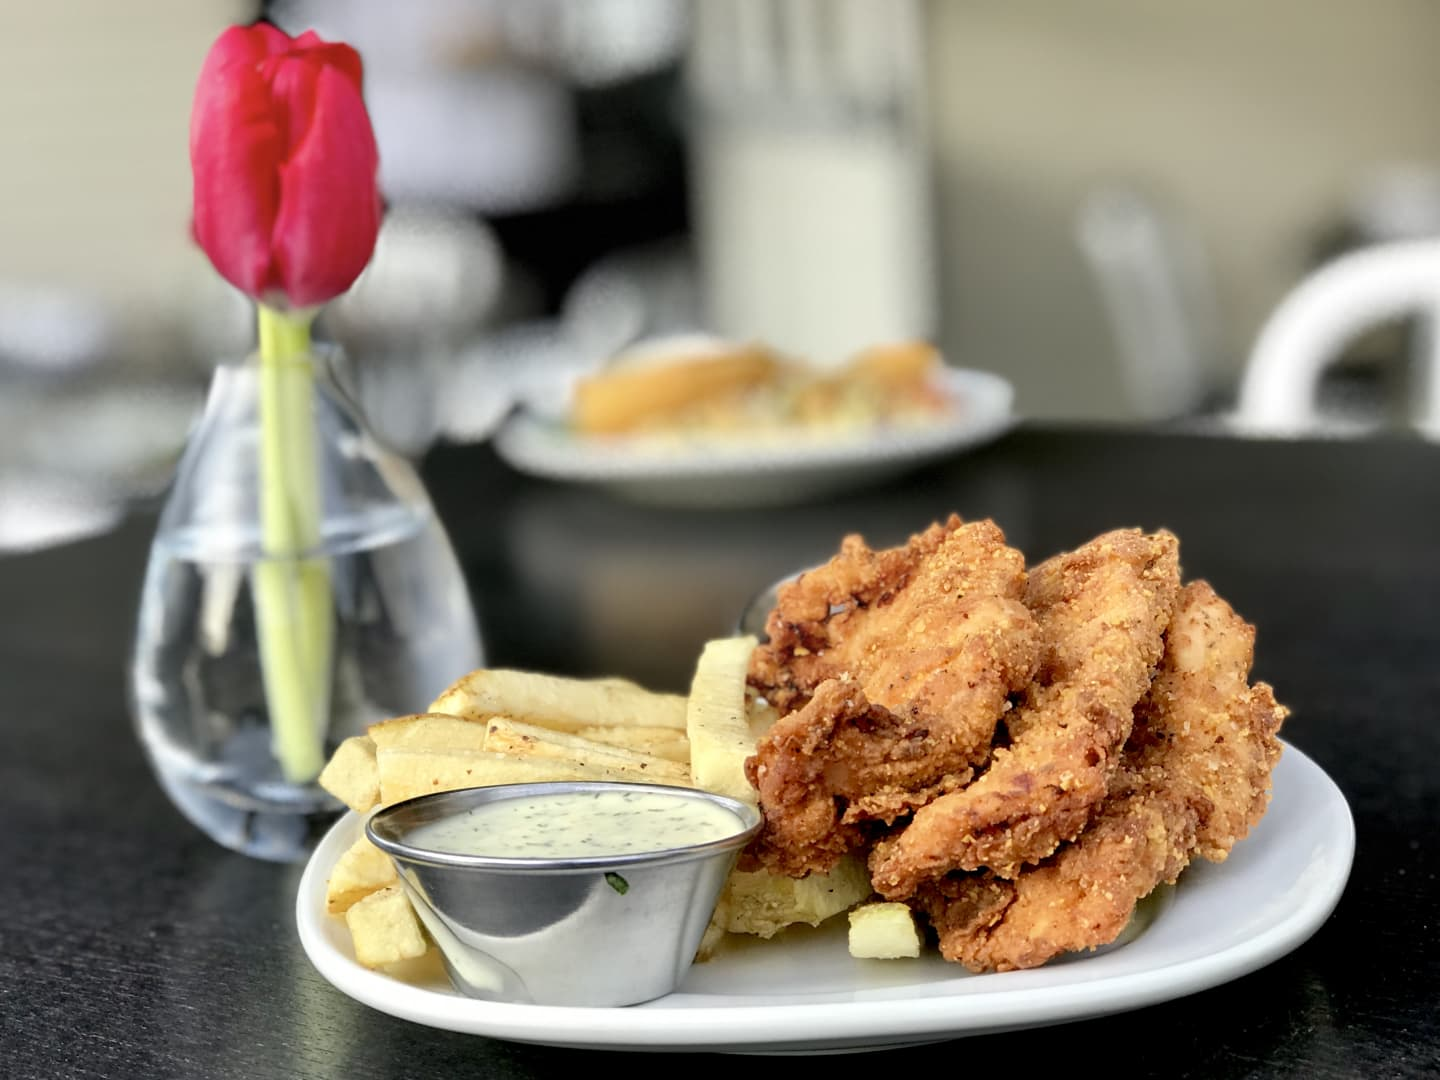 Southern Fried Chicken w/ Hand-Cut Fries